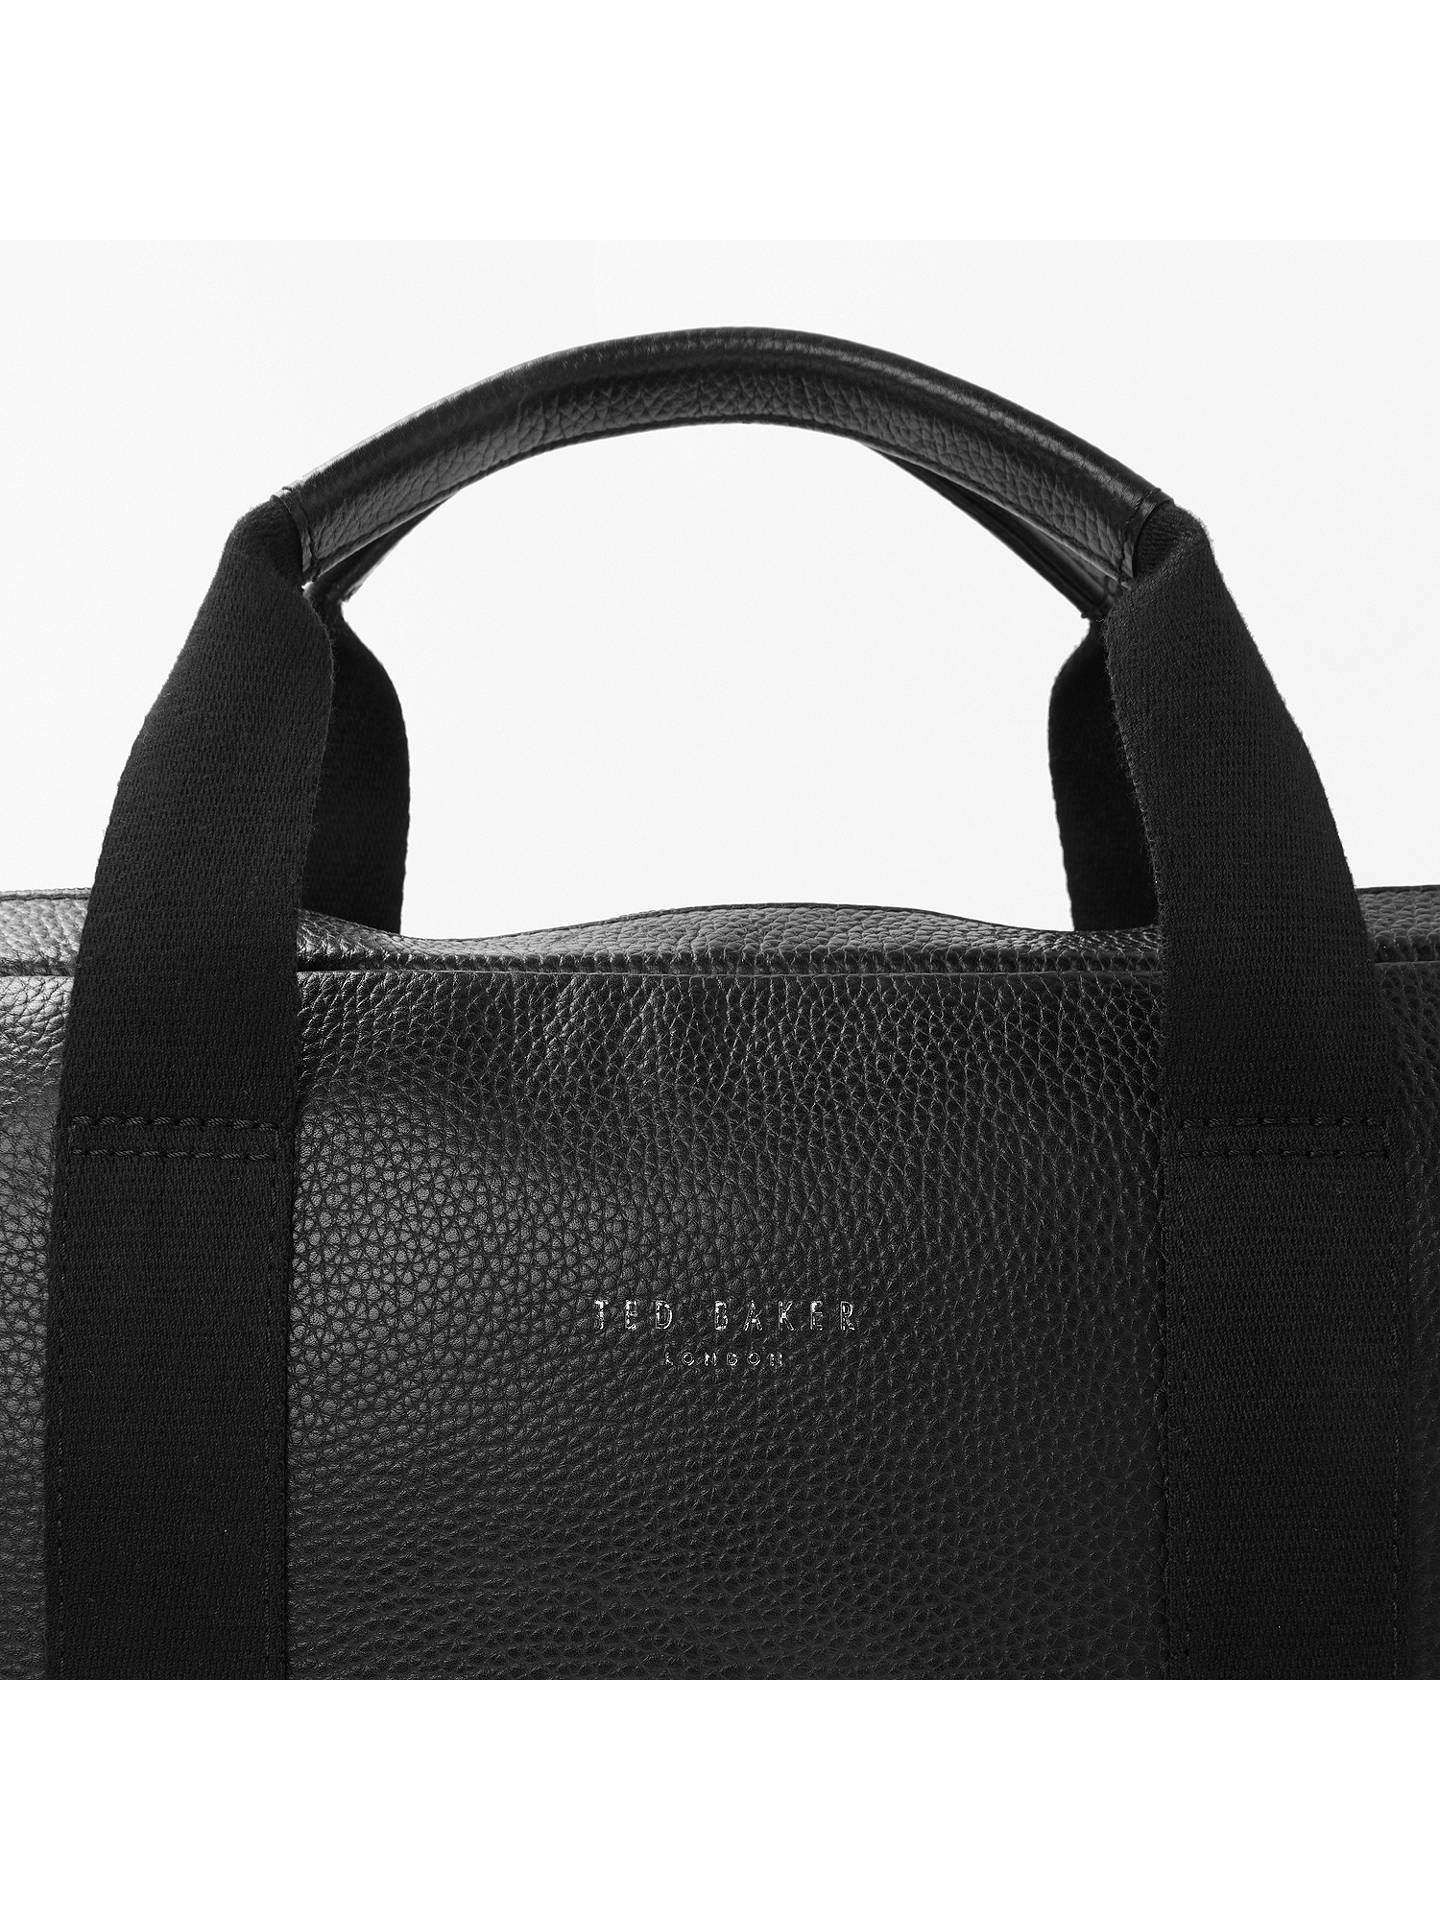 BuyTed Baker Importa Leather Document Bag, Black Online at johnlewis.com